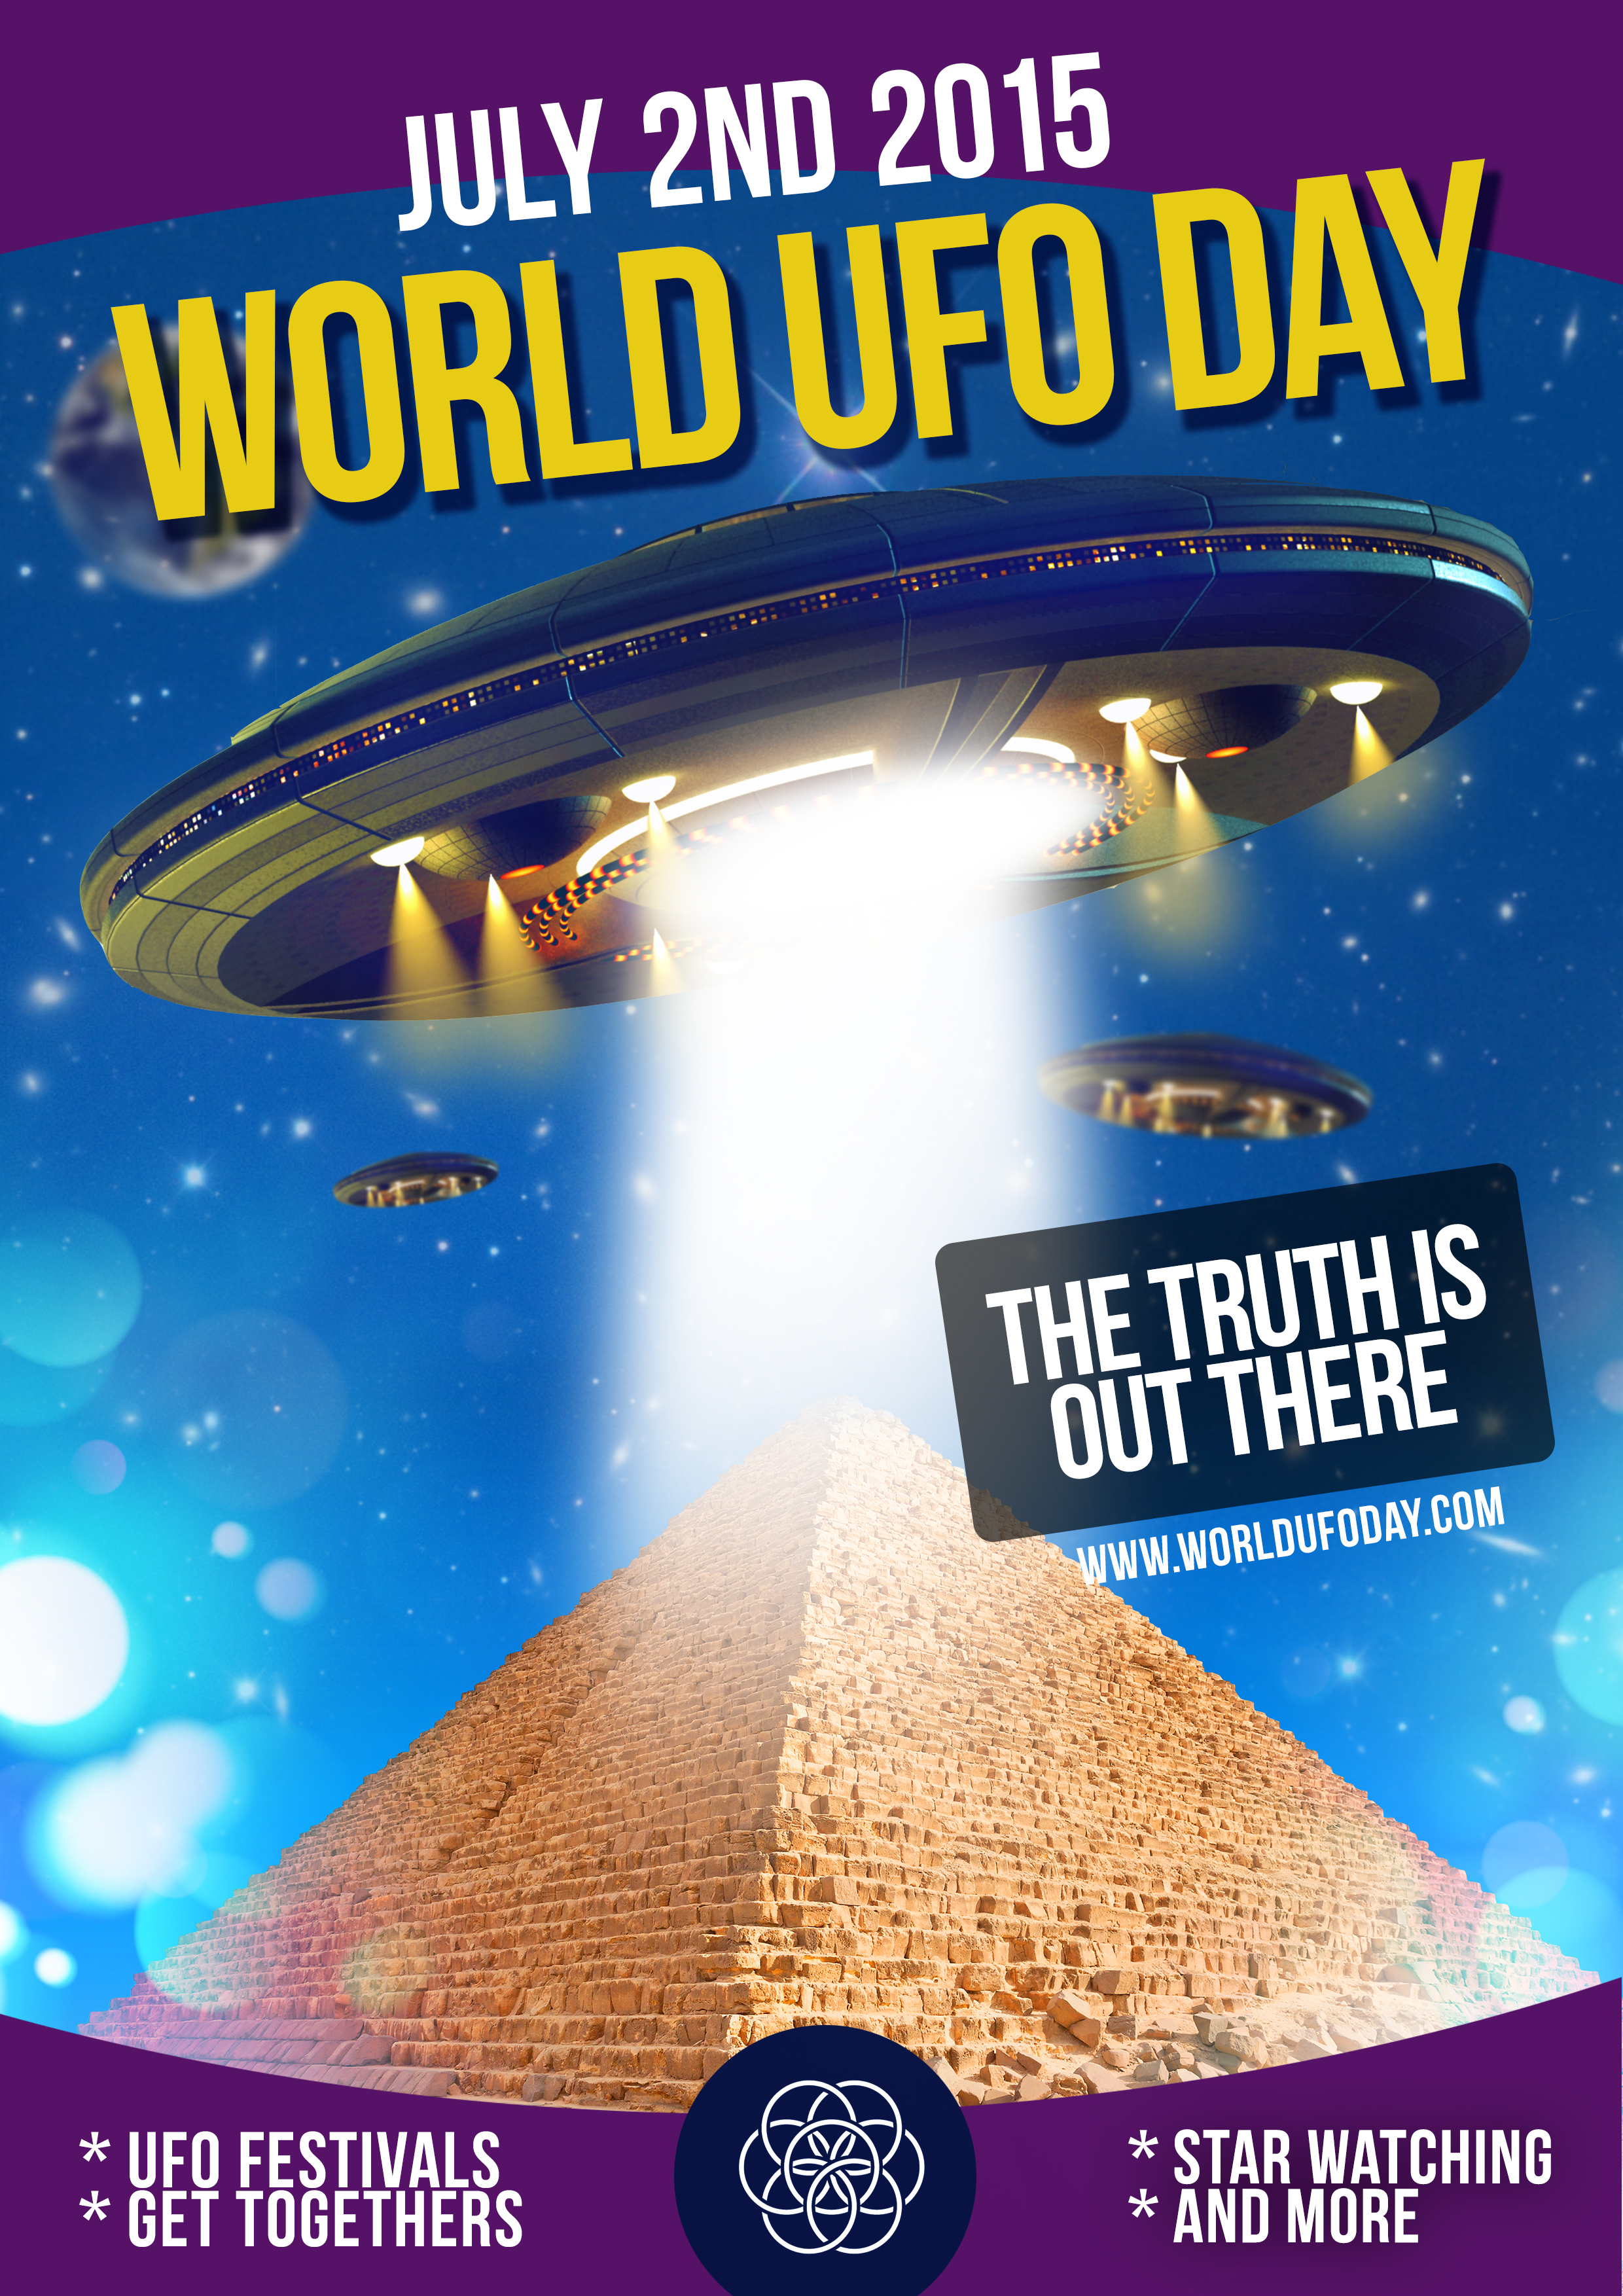 8 things you should know about UFOs on the World UFO Day